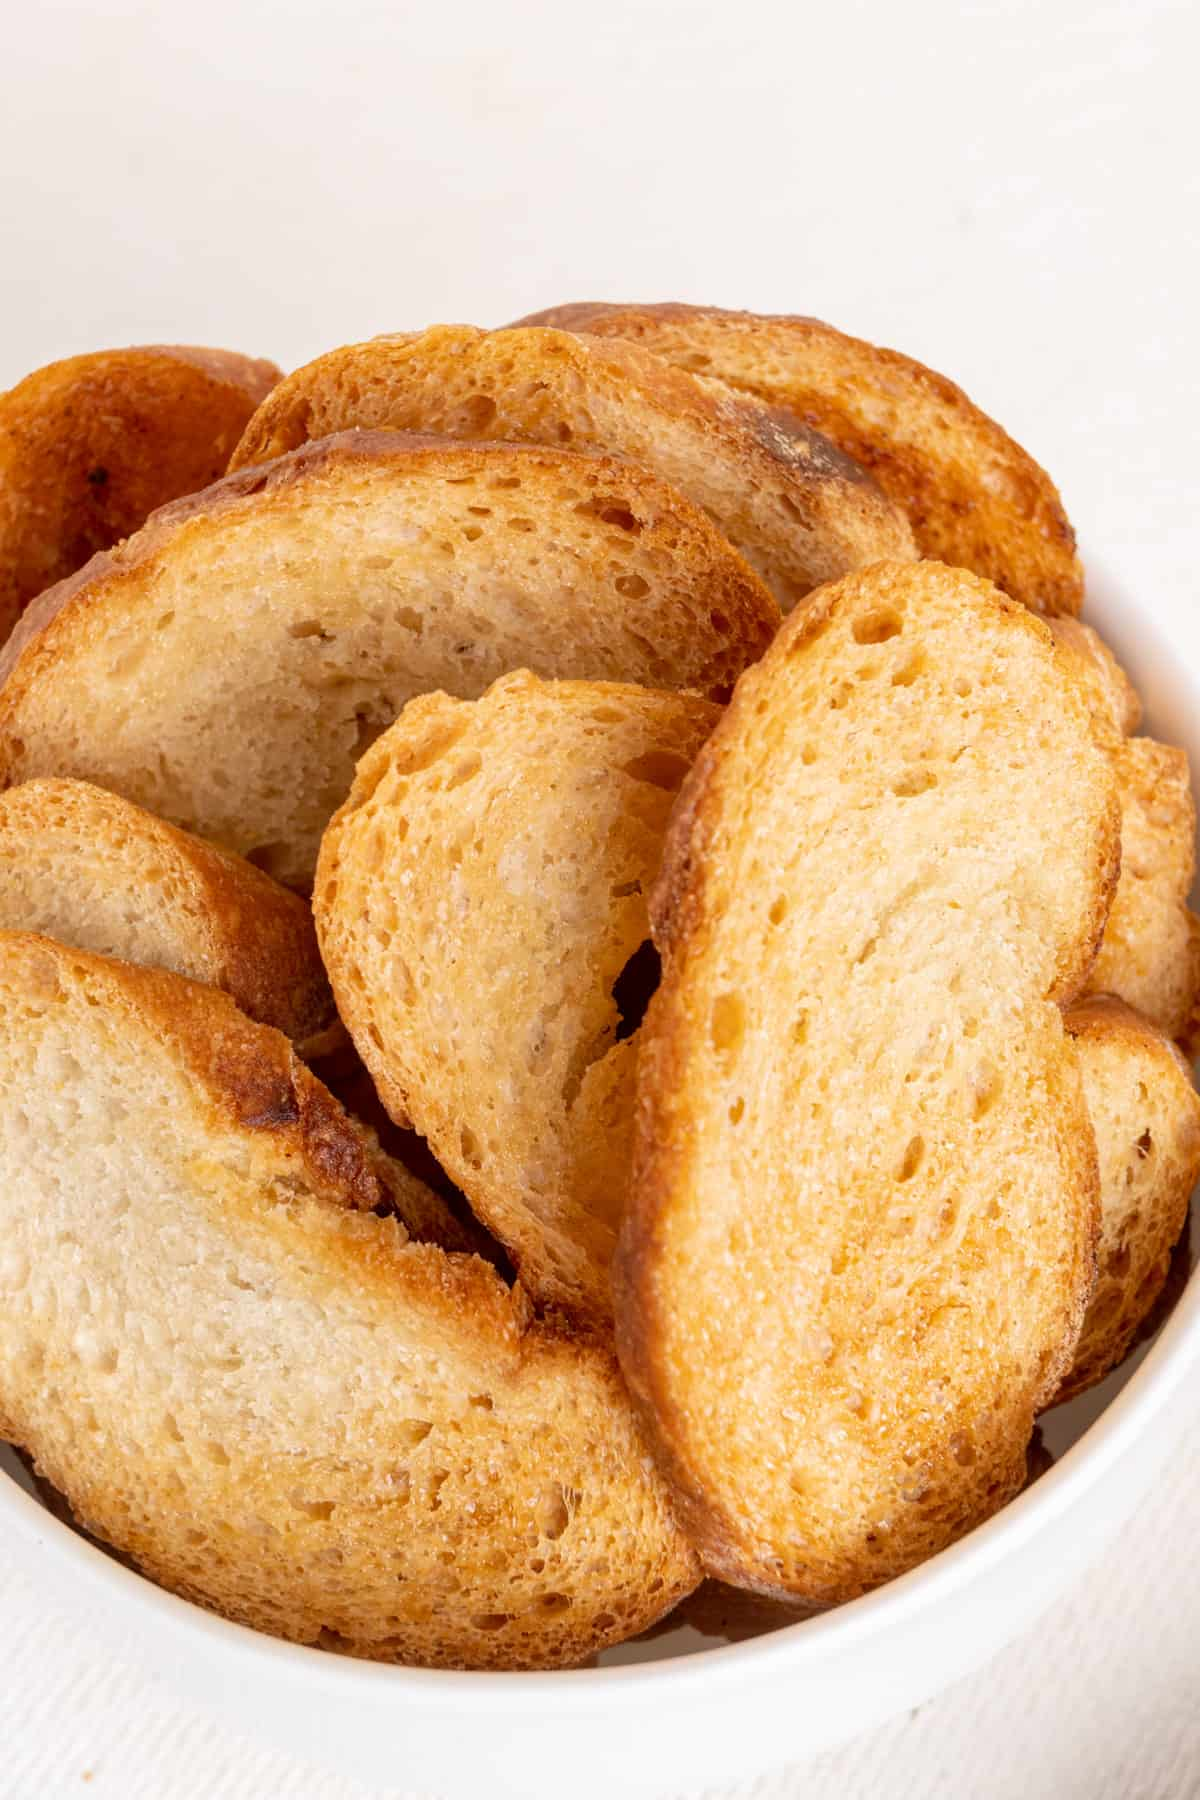 A bowl of thin slices of baguette, baked golden brown and crispy.